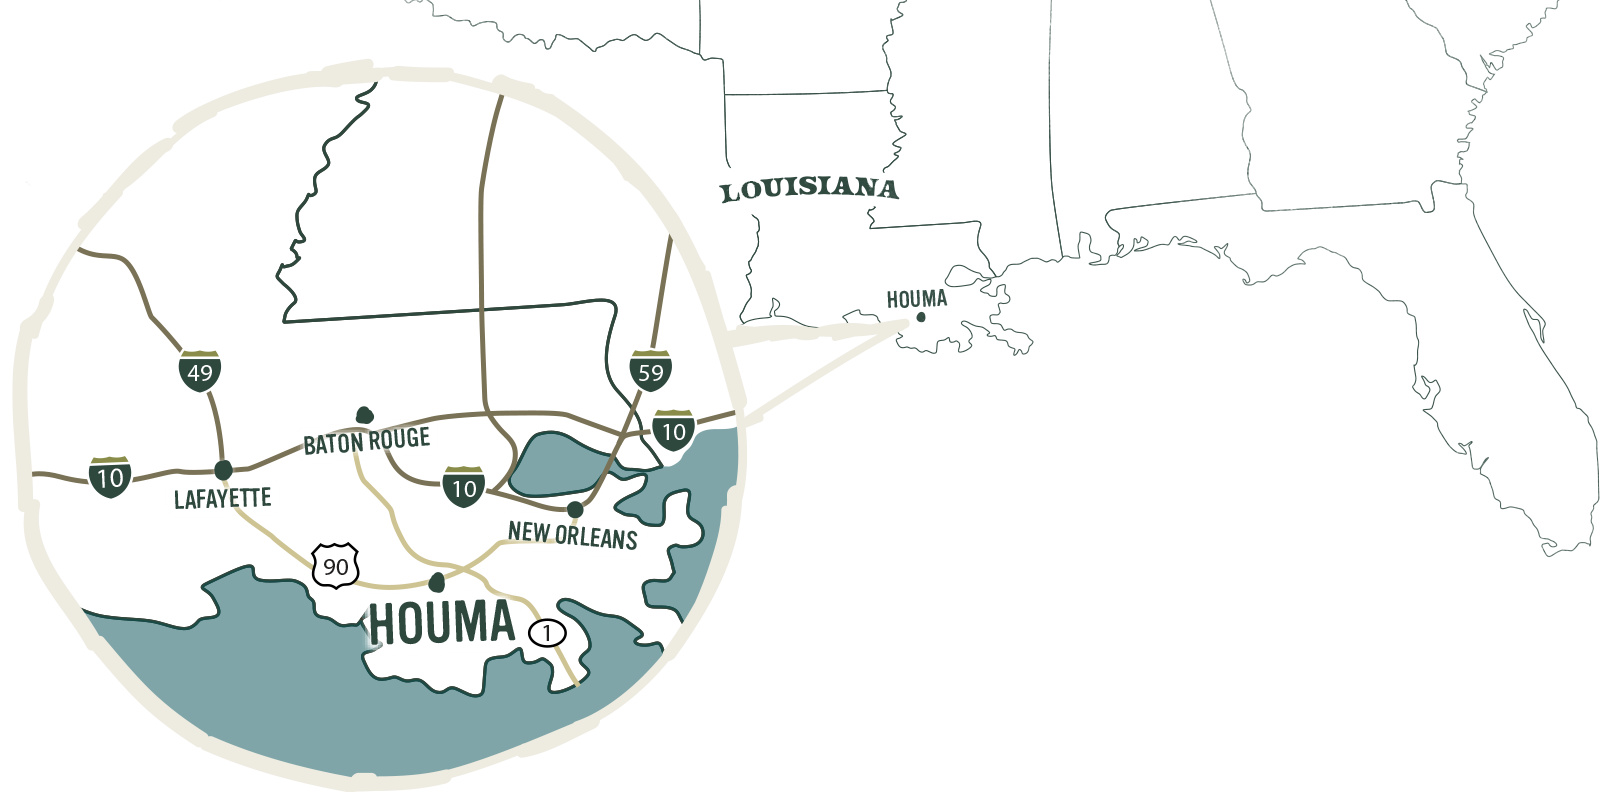 Houma location on map